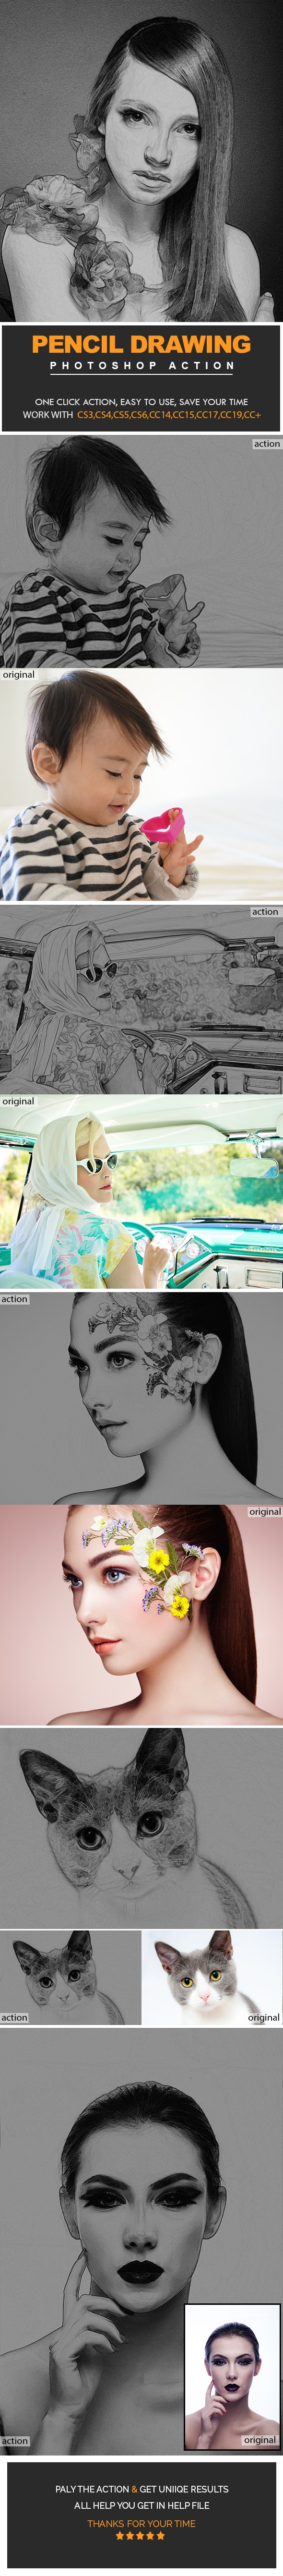 Pencil Drawing Photoshop Actions - Photo Effects Actions